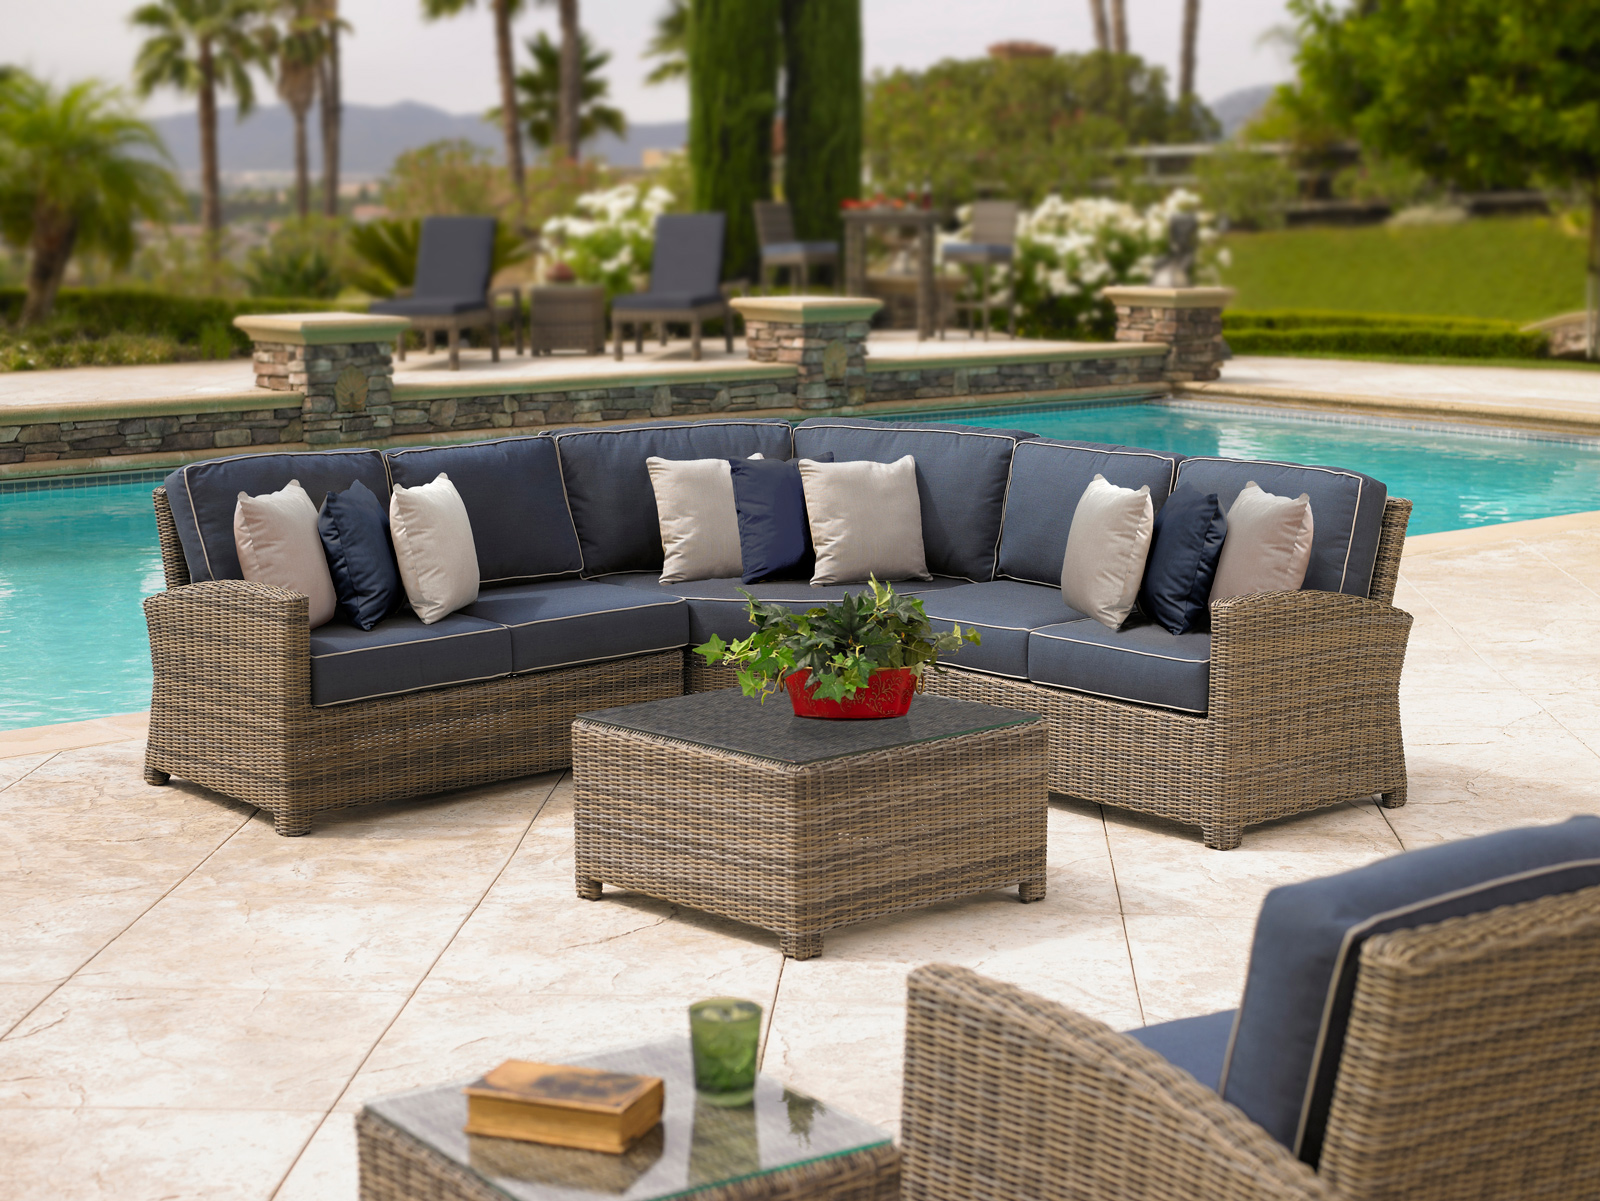 Catalina Commercial Outdoor Furniture At Low Prices